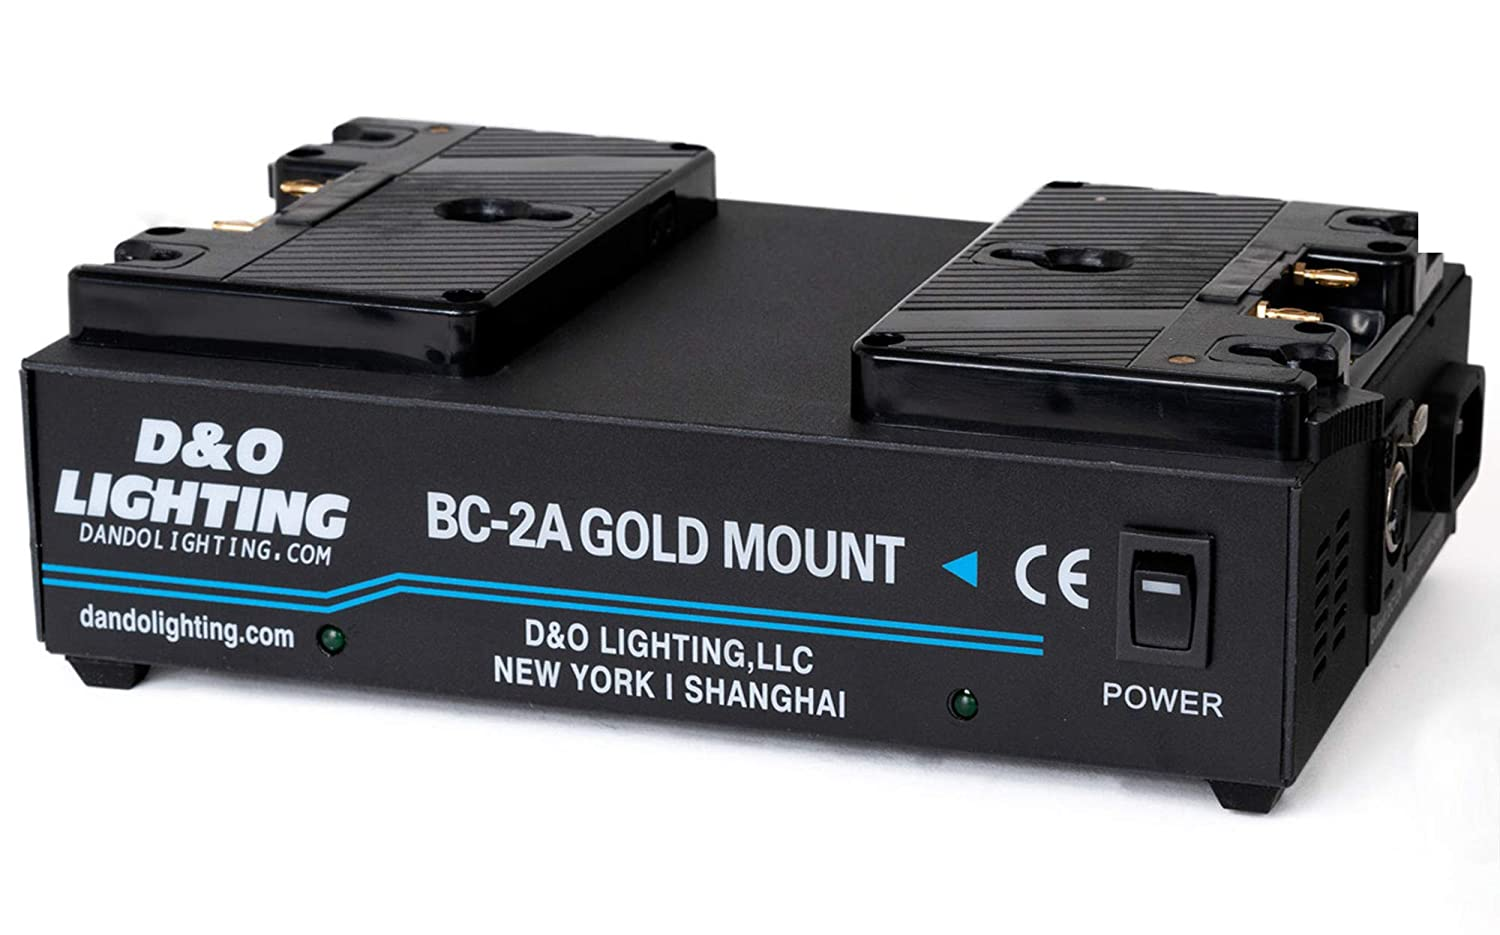 Dual Channel Anton Bauer Gold Mount Battery Kit Charger with 16.8V Power Supply Output Comer BC-C2A